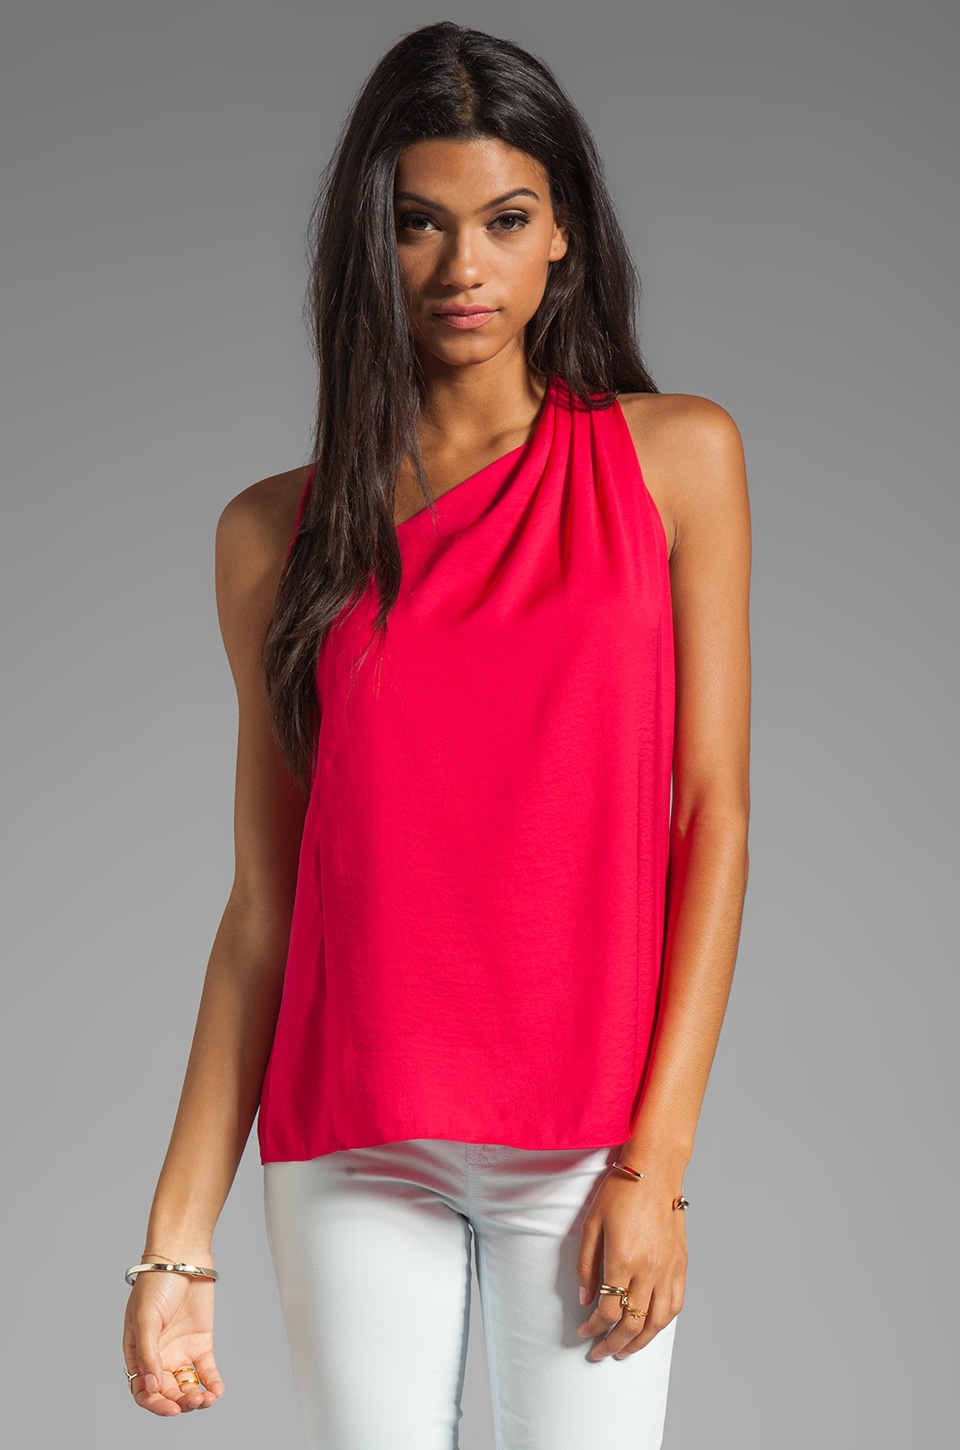 Halston Heritage Asymmetrical Draped Racerback Top in Bright Raspberry